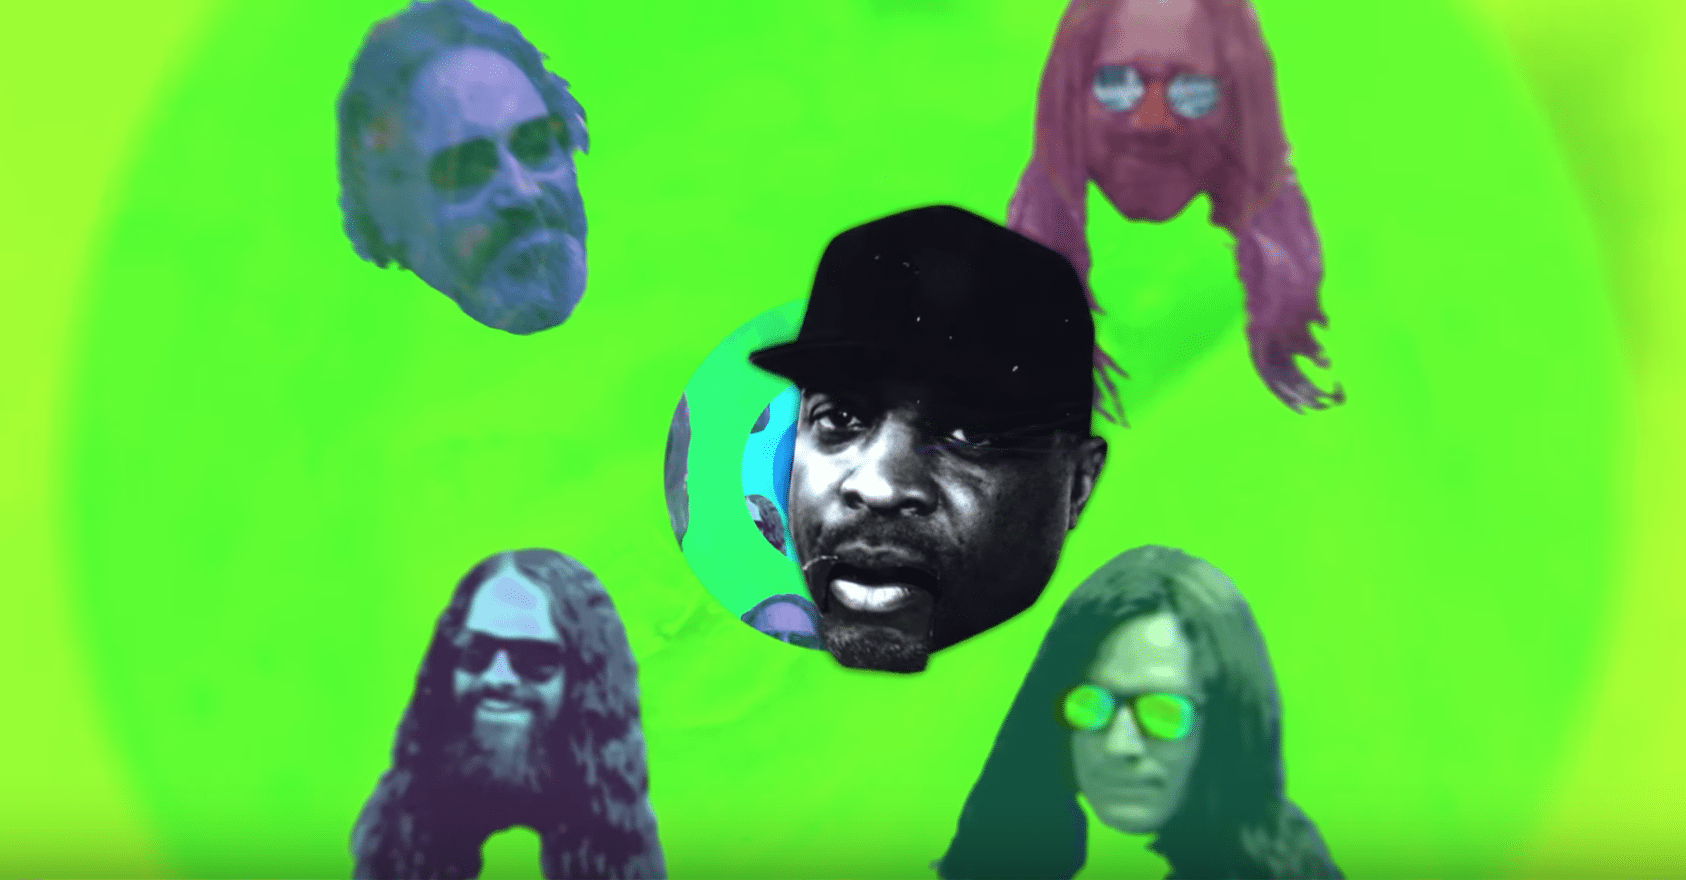 a541aa958038 Circles Around The Sun Releases Psychedelic New Music Video With Cameo By  Public Enemy s Chuck D  Watch